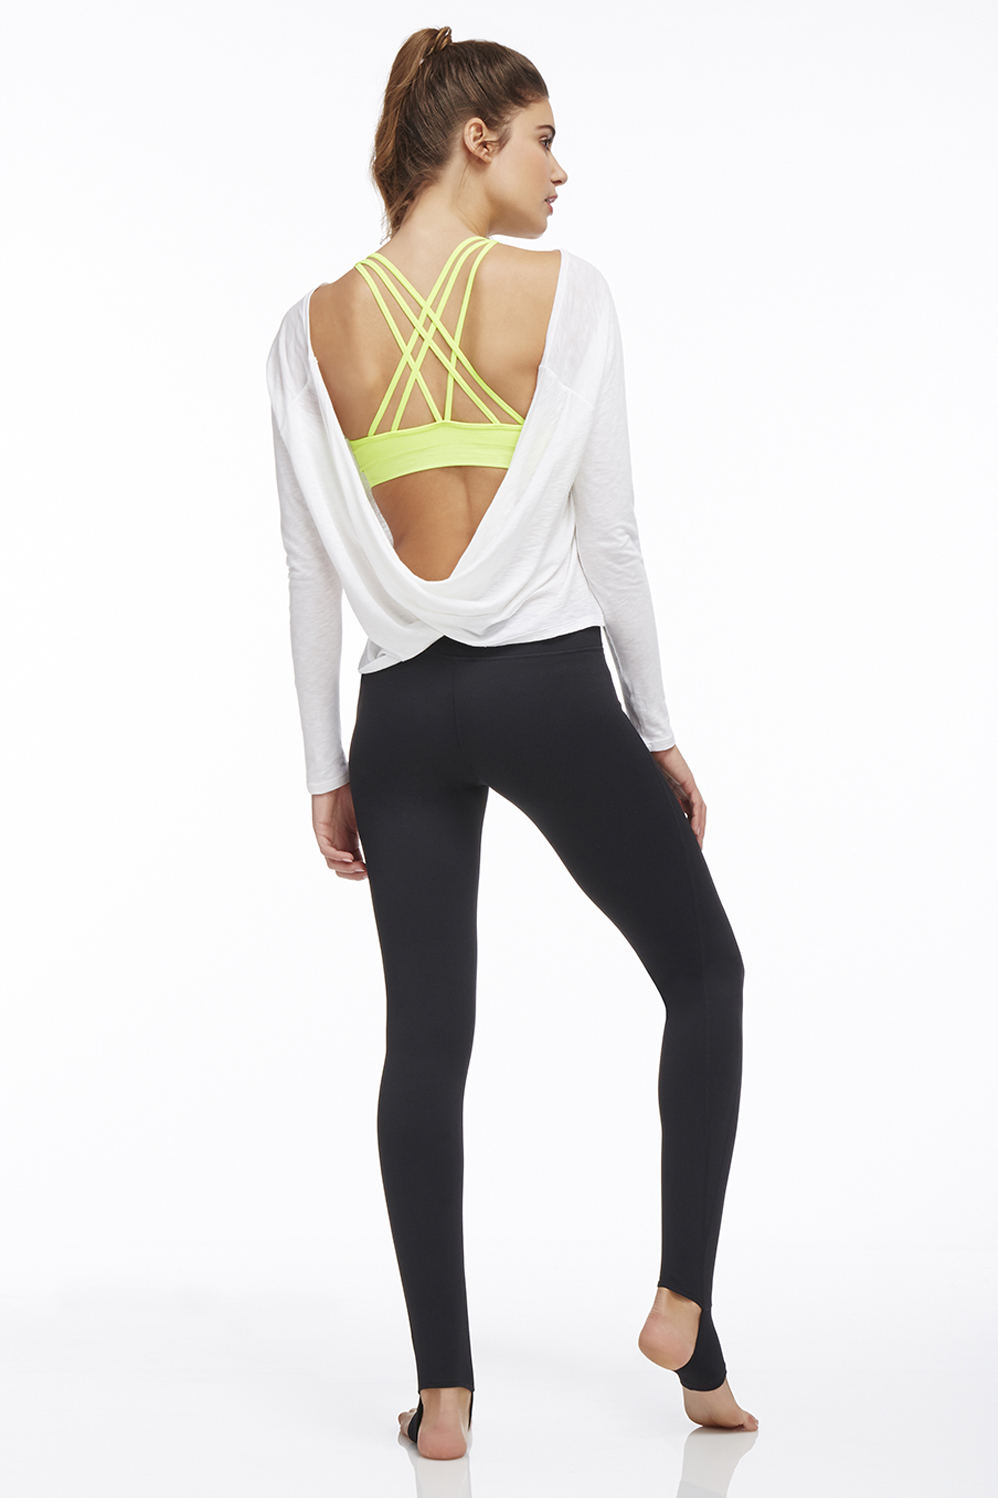 Top Outfit - Get great athletic wear at Fabletics